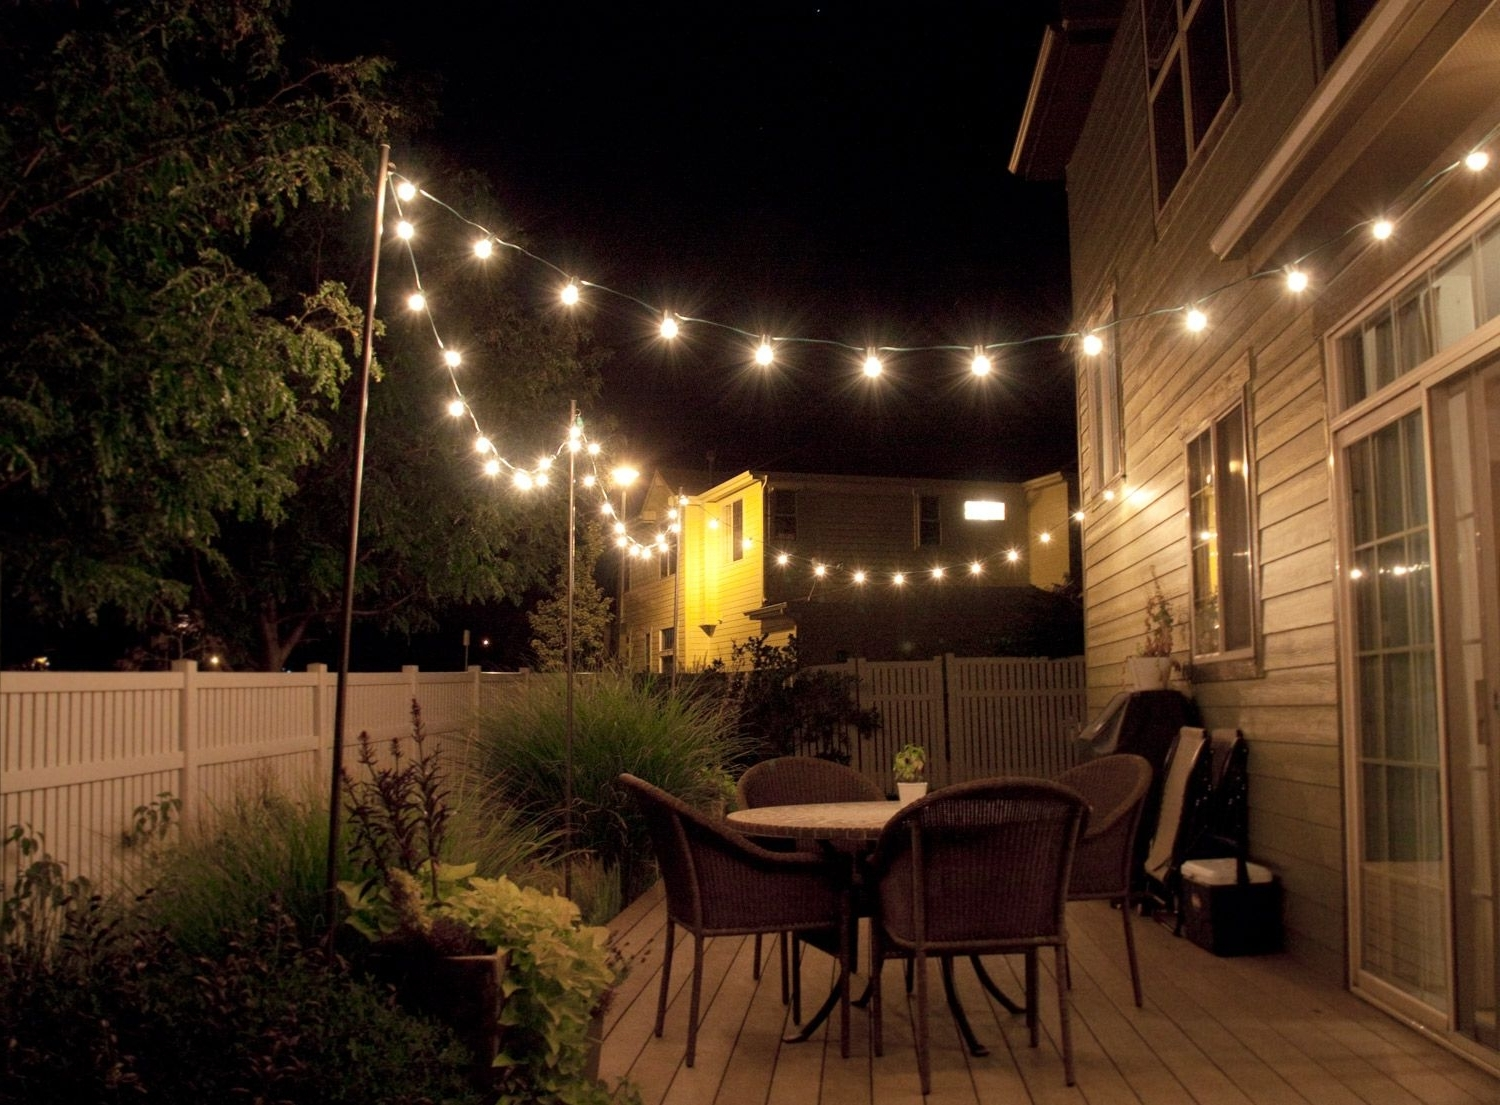 Well Liked Homemade Outdoor Hanging Lights Intended For How To Make Inexpensive Poles To Hang String Lights On – Café Style (View 4 of 20)